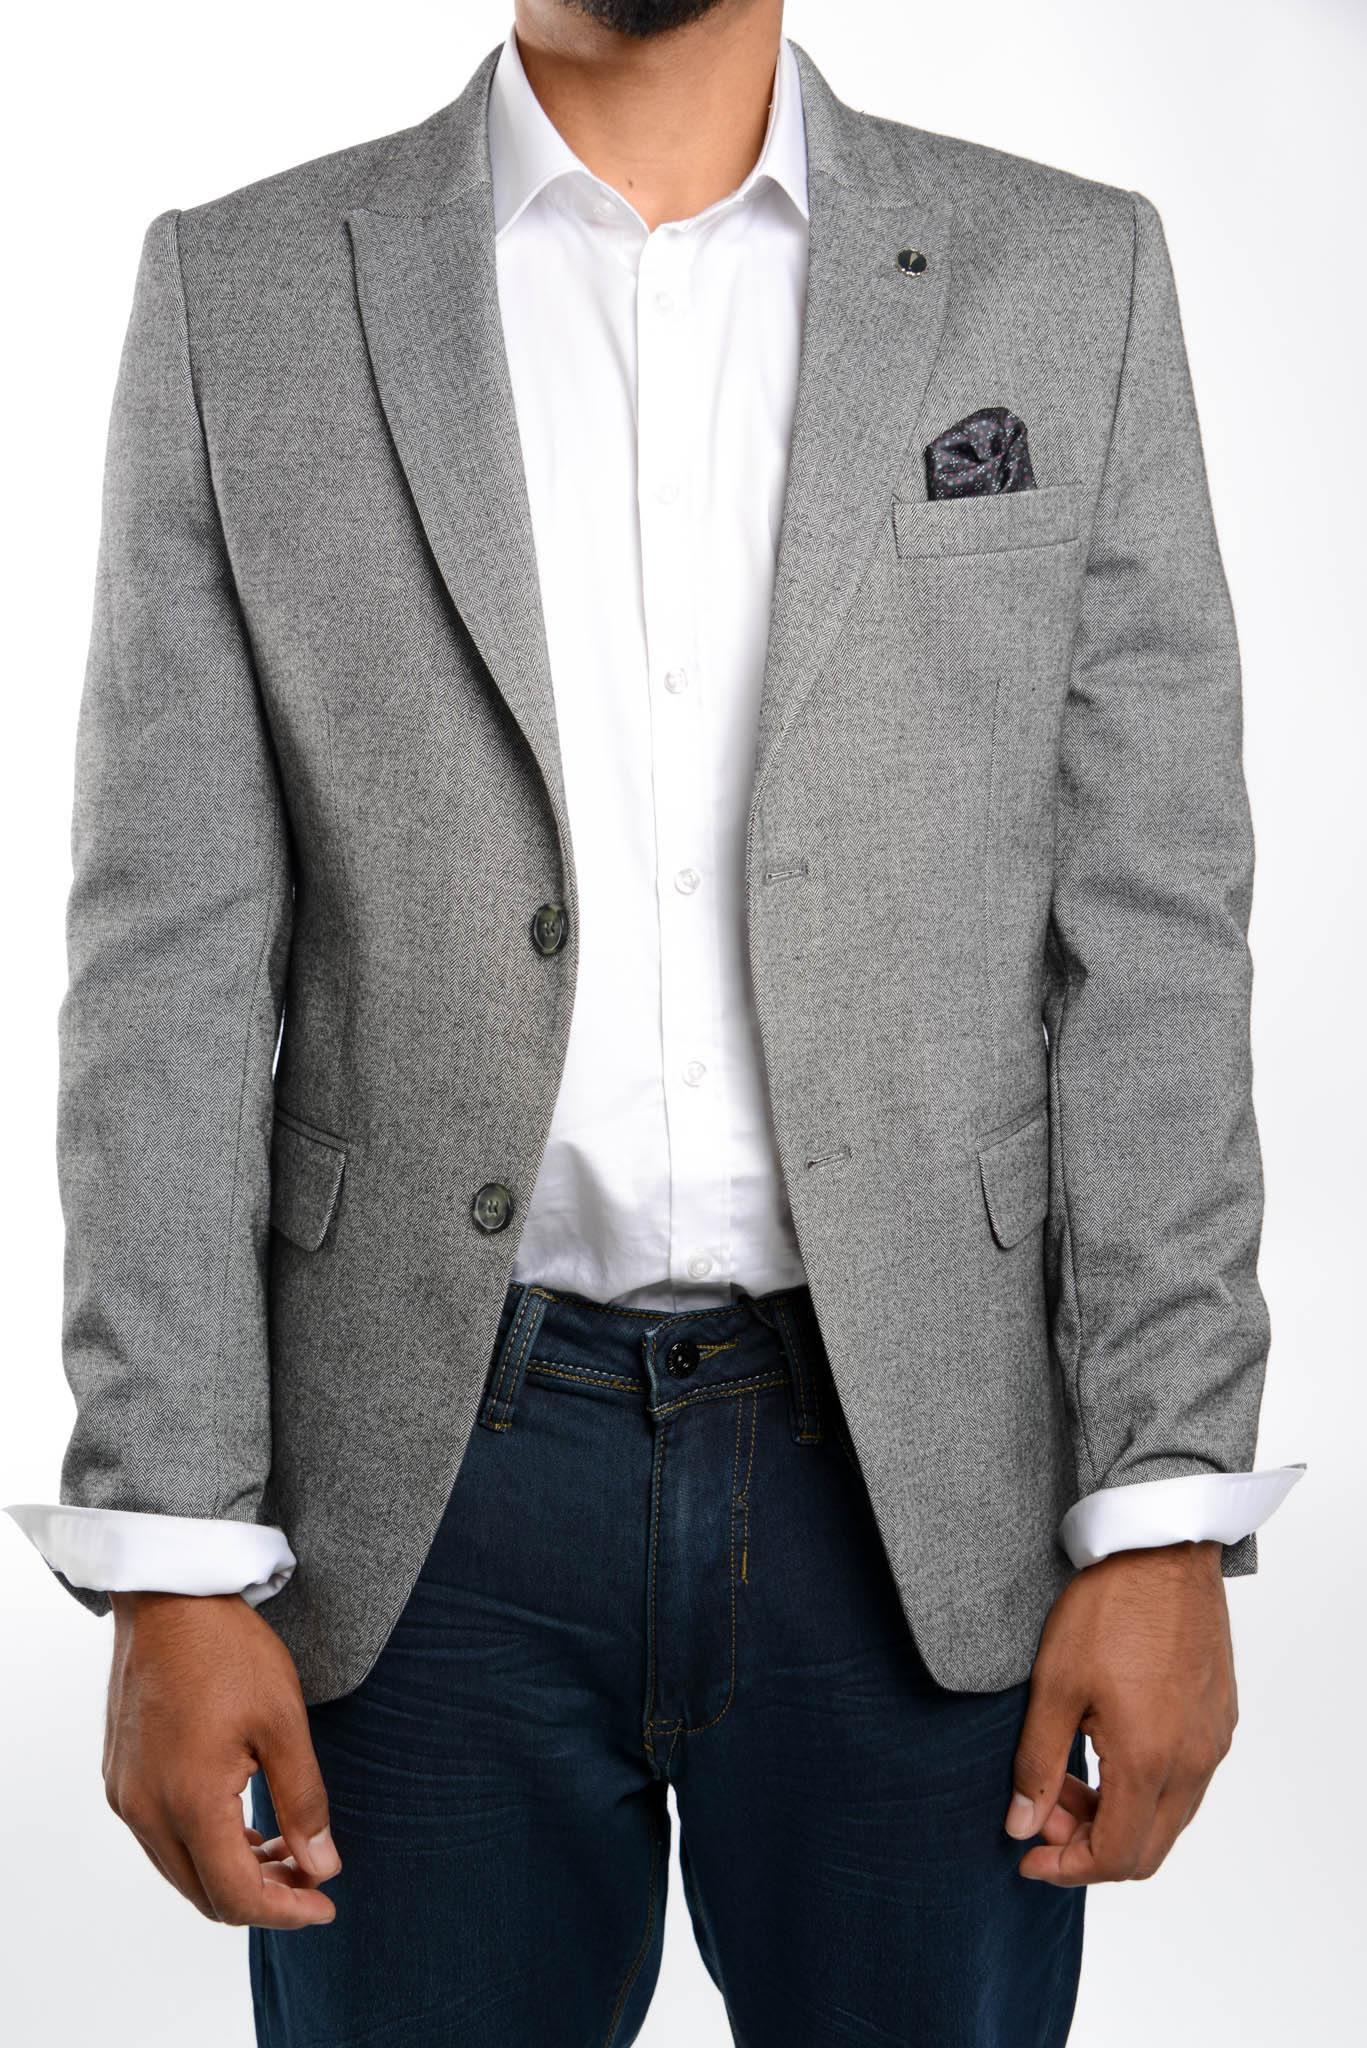 Euro Herringbone Blazer - Haight & Ashbury